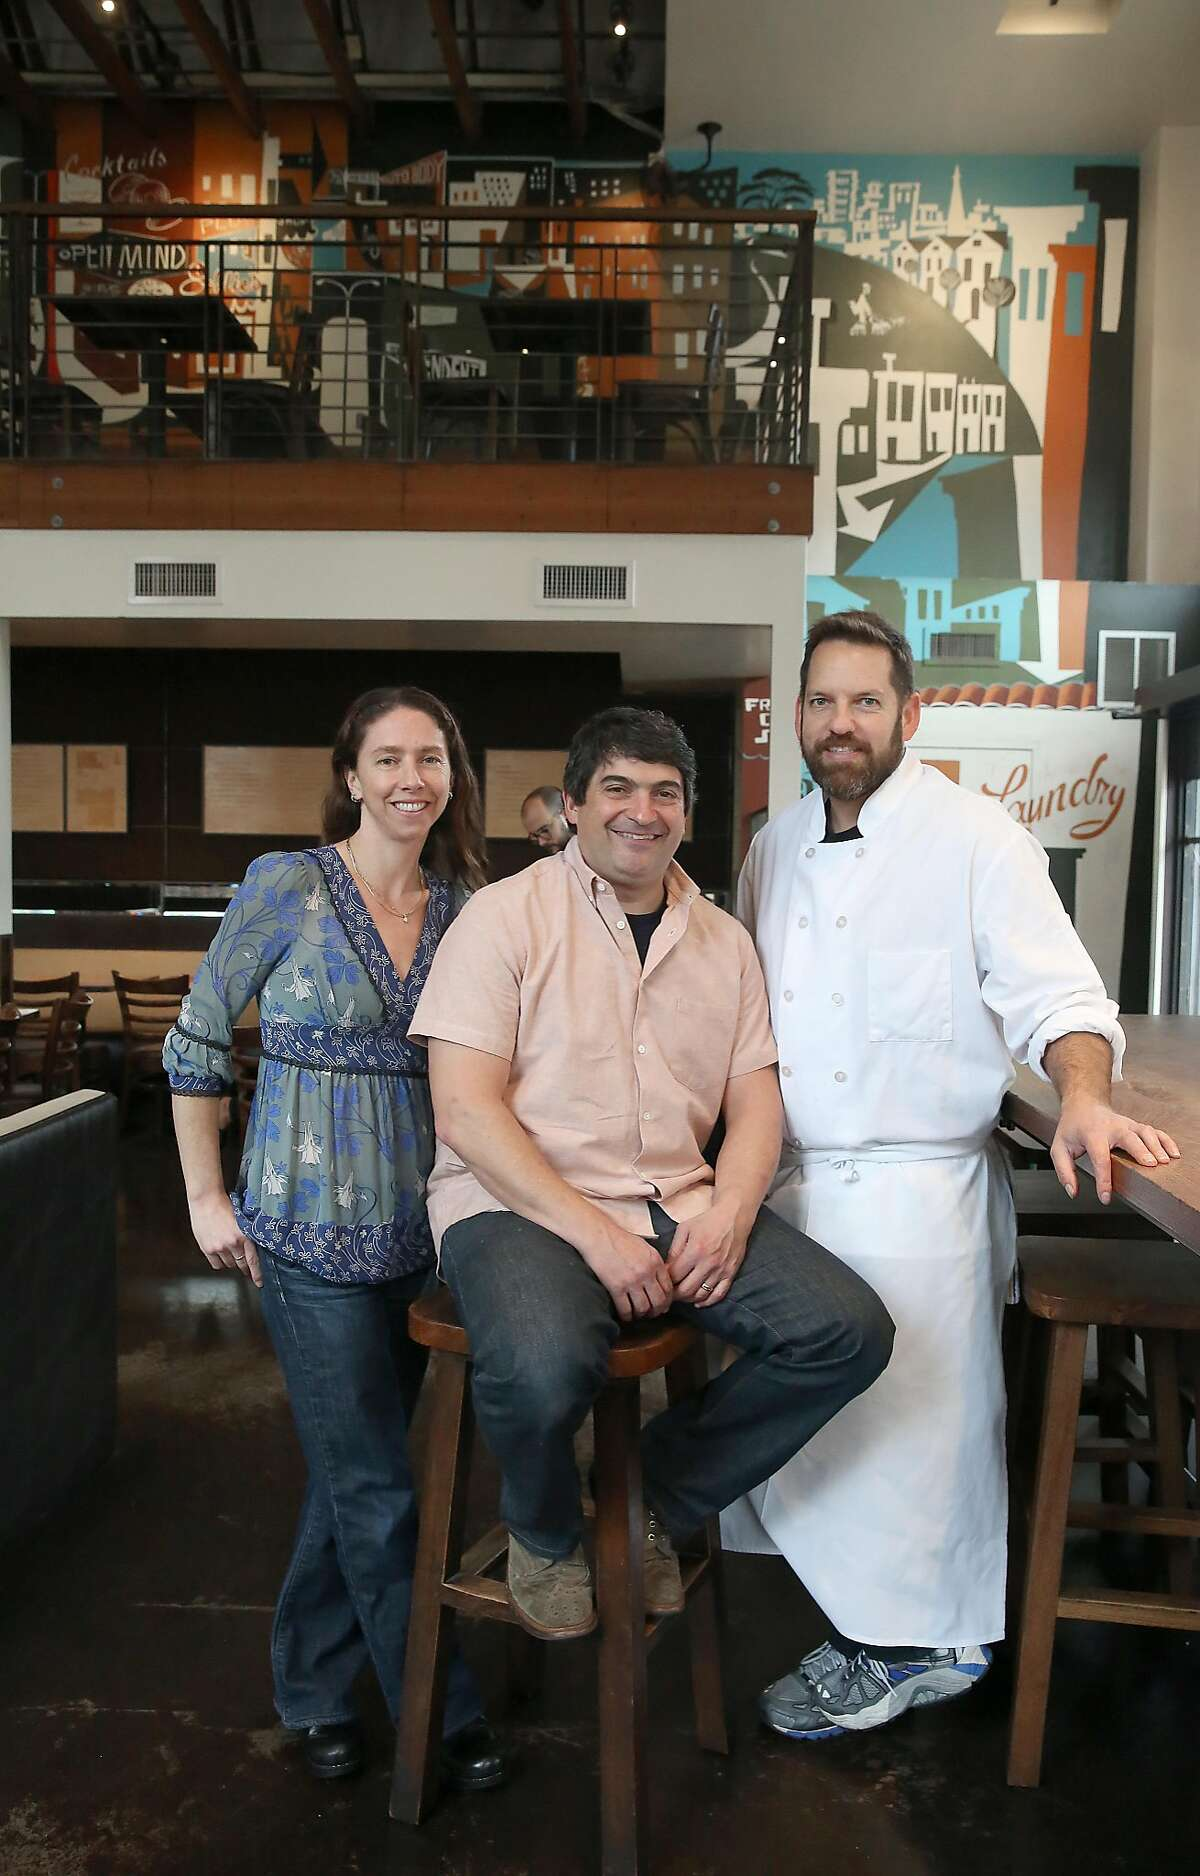 Owners Allyson Jossel (left), Jeff Hanek (middle), and Laurence Jossel (right) at Nopa in San Francisco, California, on tuesday, march 8, 2016. Nopa is celebrating it's tenth anniversary.